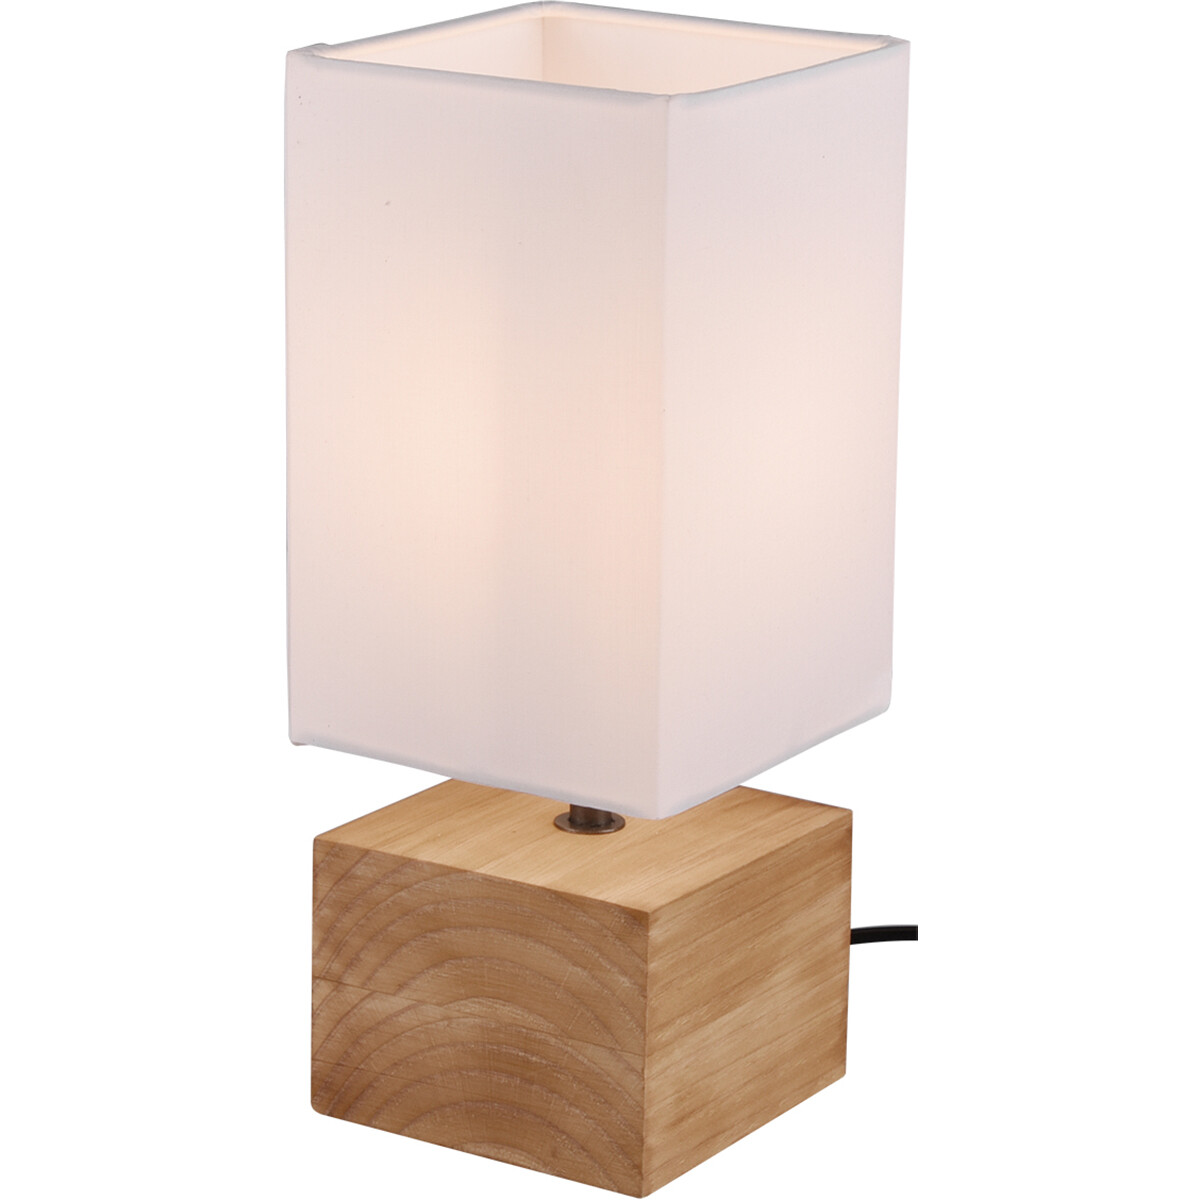 LED Tafellamp - Tafelverlichting - Trion Wooden - E14 Fitting - Vierkant - Mat Wit - Hout